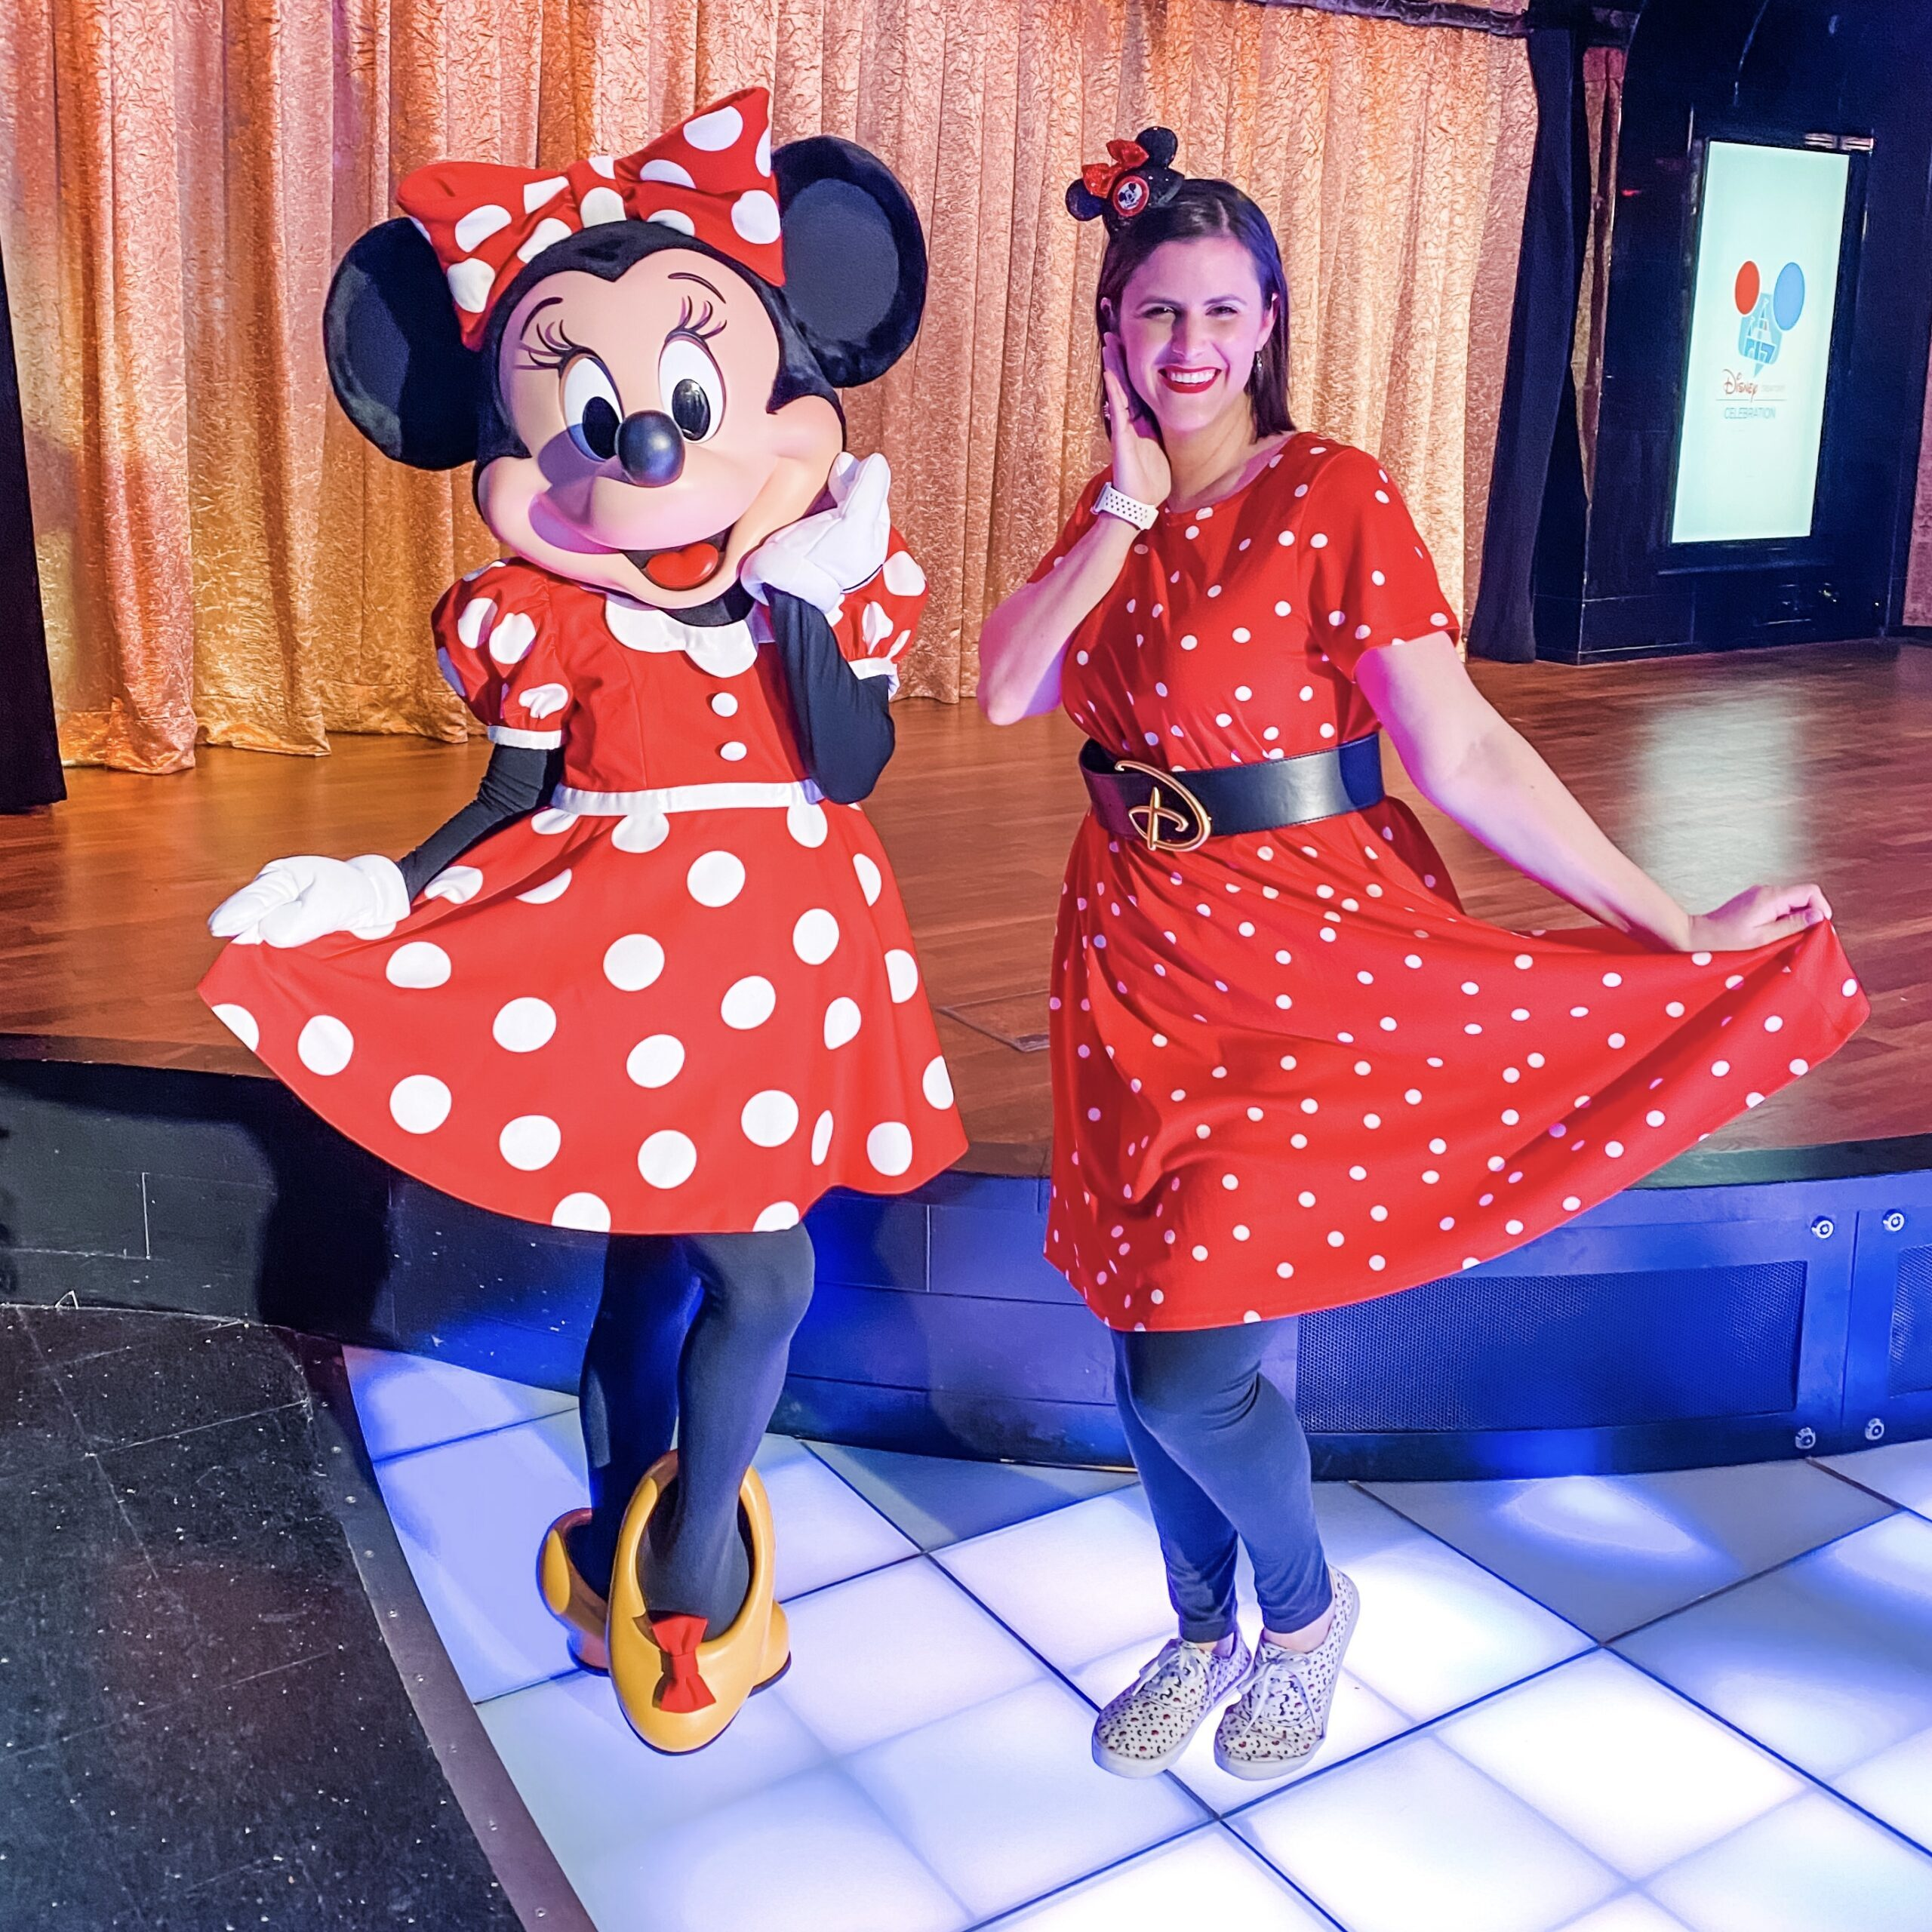 Polka dot, red dress for Disneybound outfit as Minnie Mouse